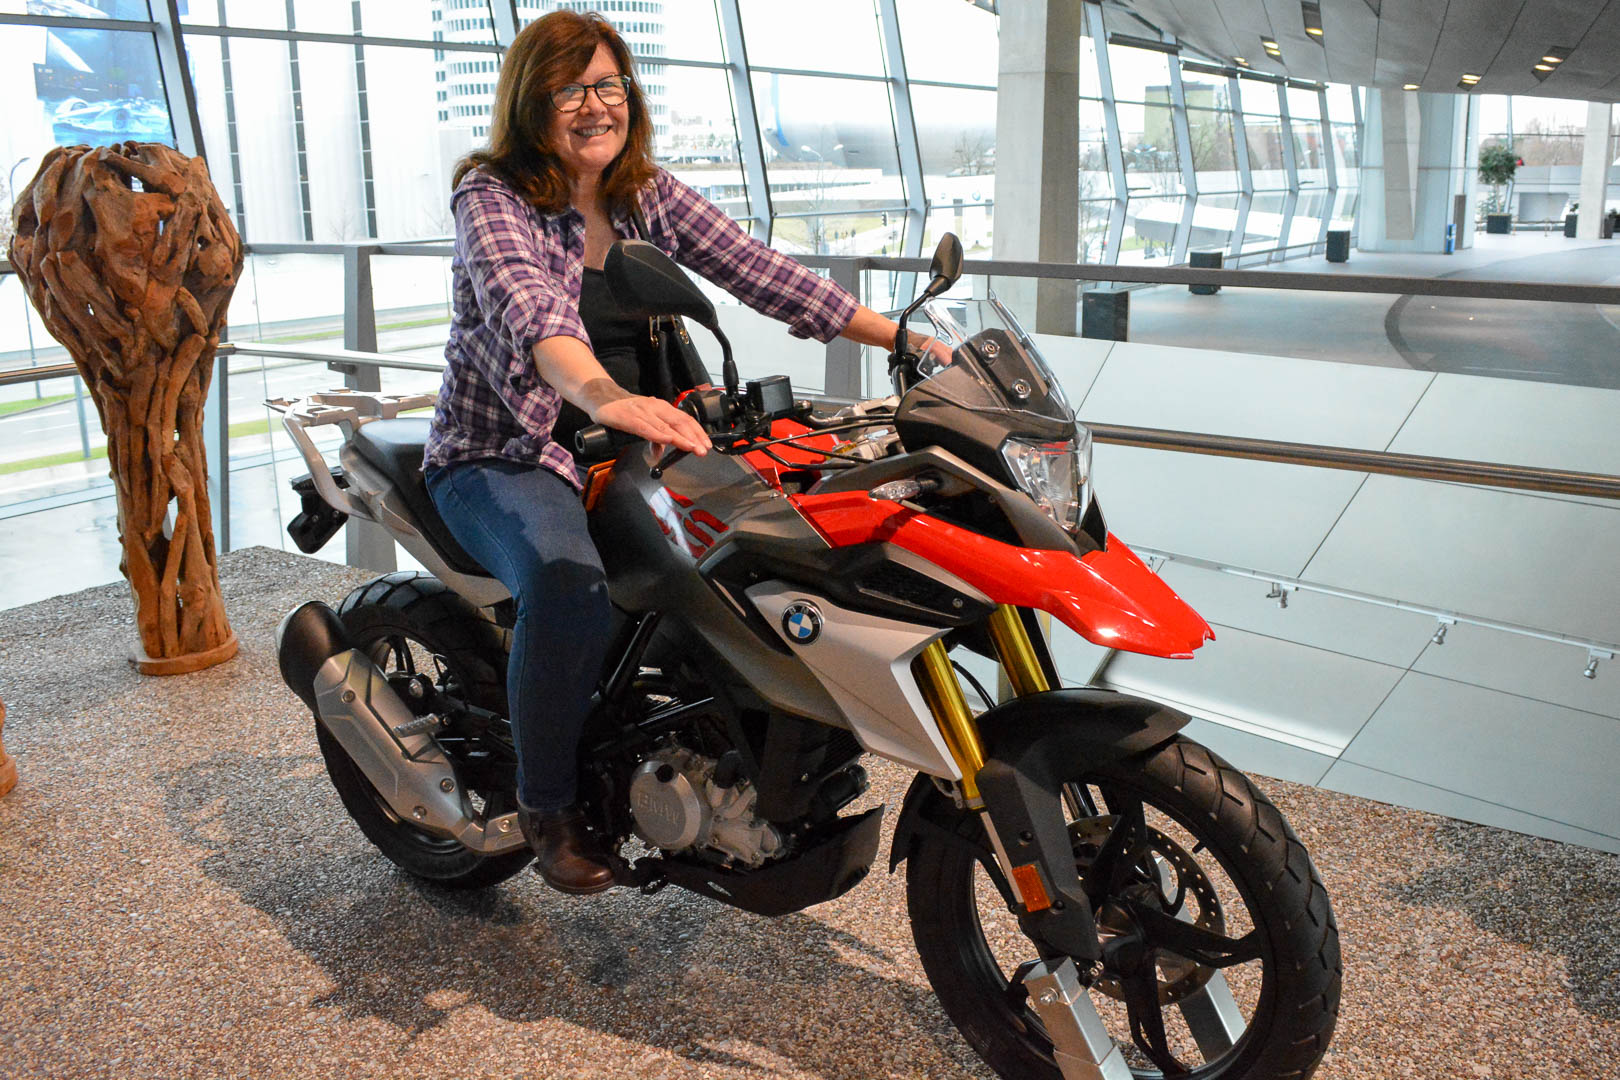 Mom found her dream bike! It suited her really well